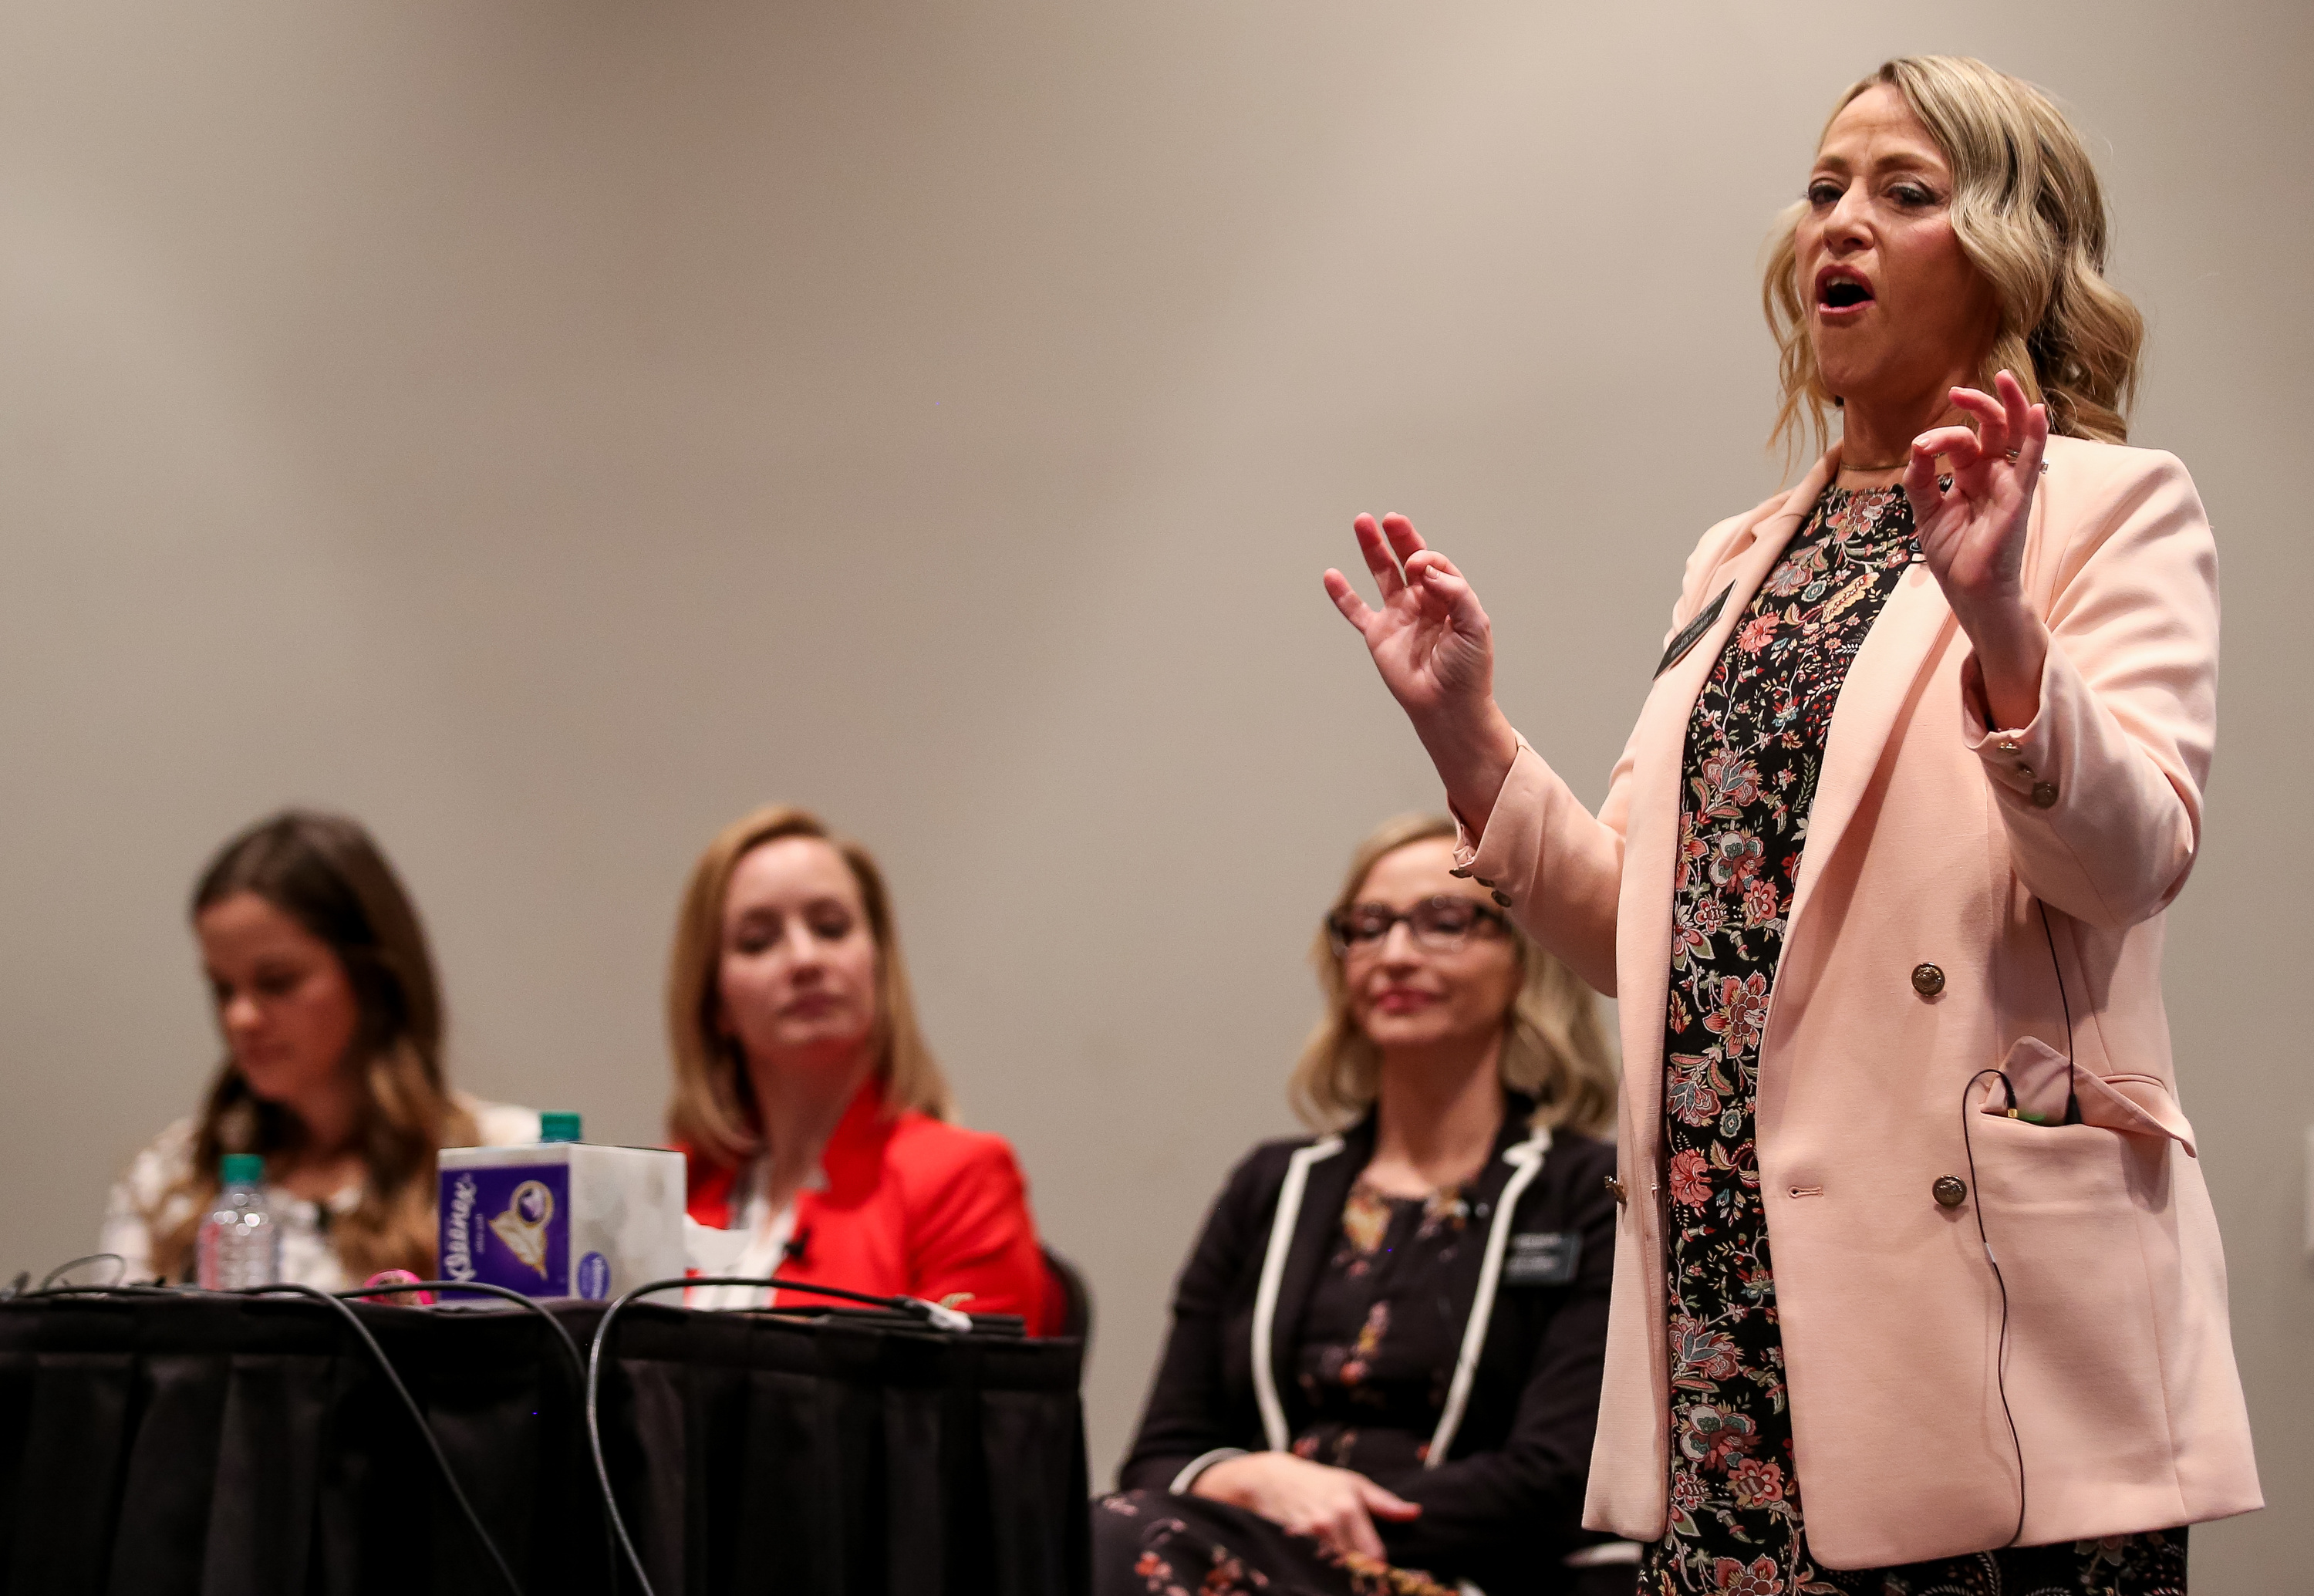 Rhonna Farrer speaks during the Light Keepers session at the RootsTech conference at the Salt Palace in Salt Lake City on Friday, March 1, 2019.